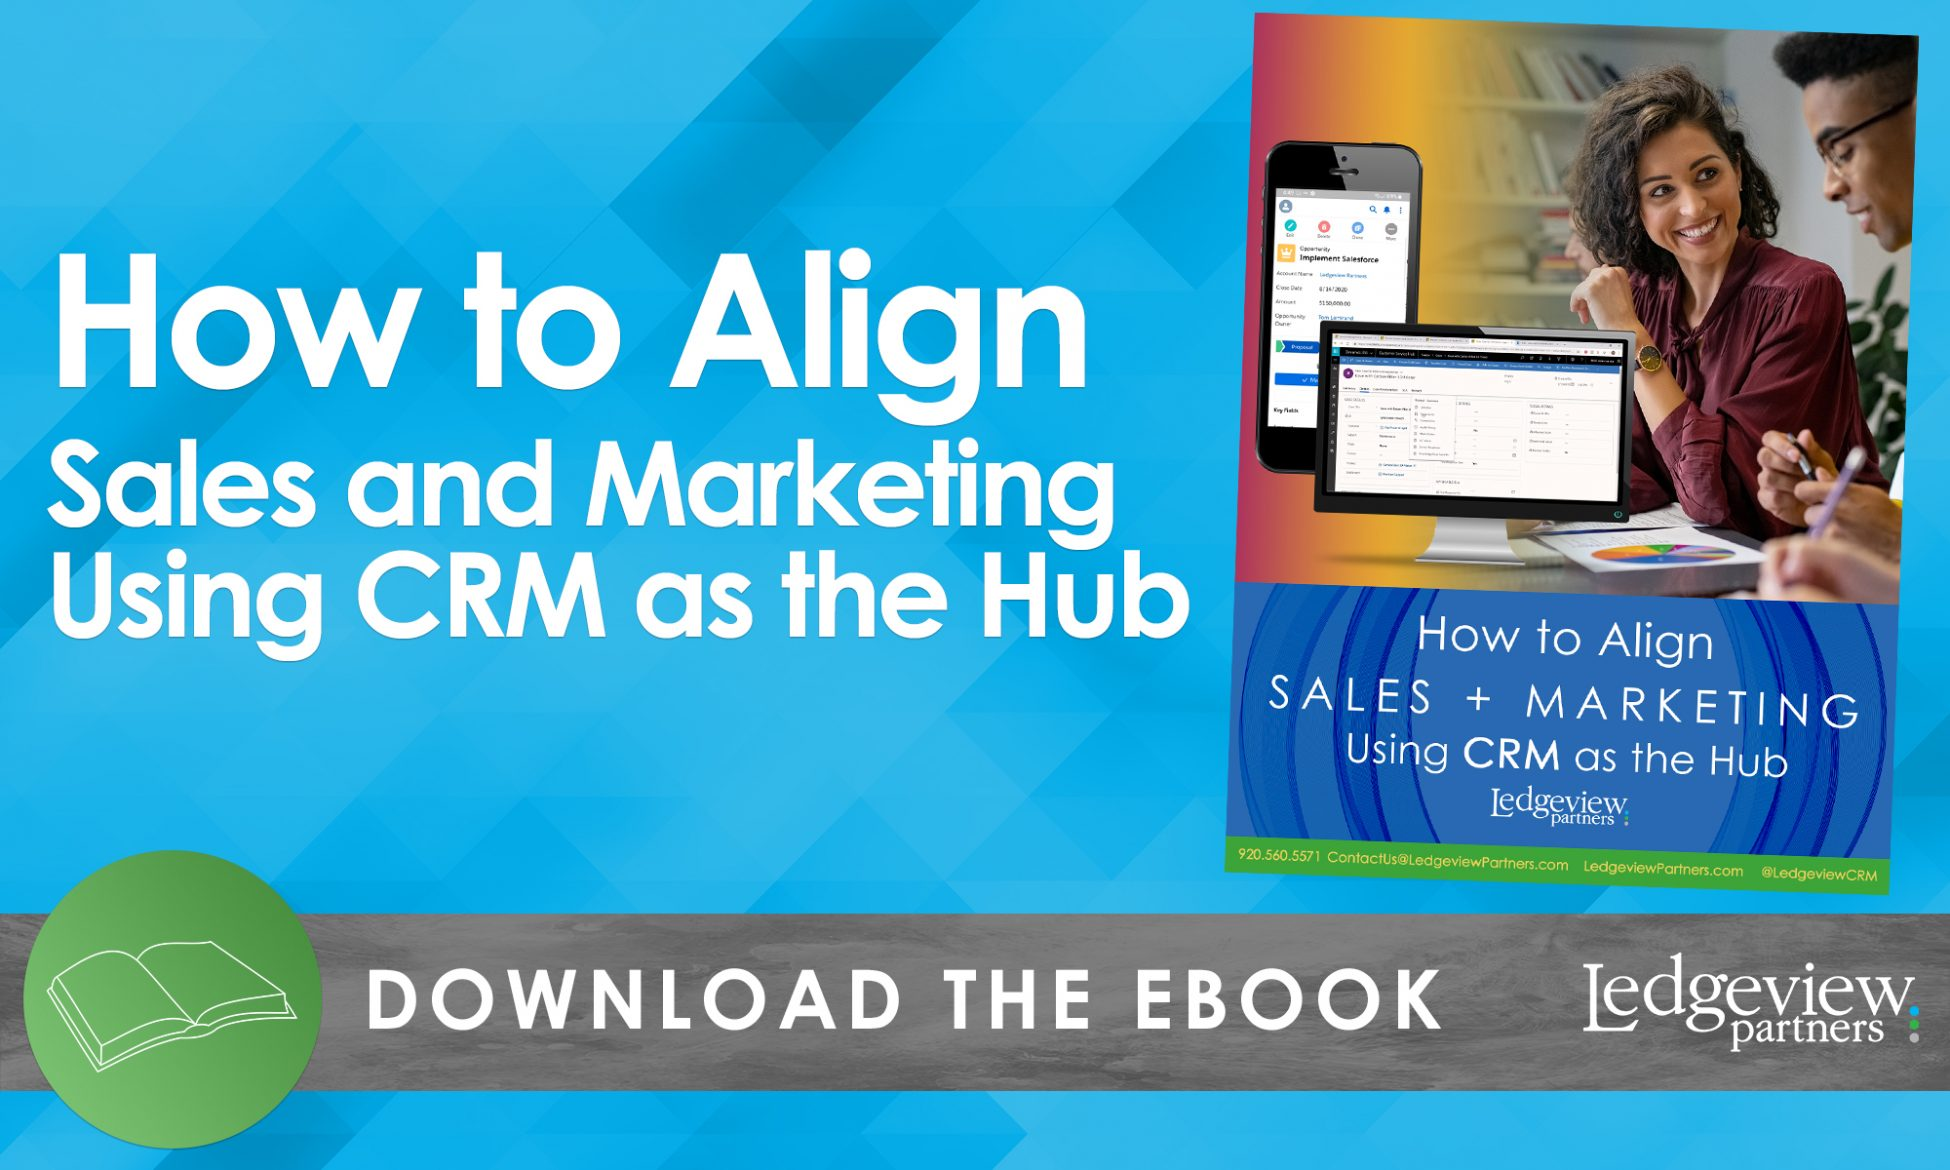 eBook: How to Align Sales and Marketing Using CRM as the Hub